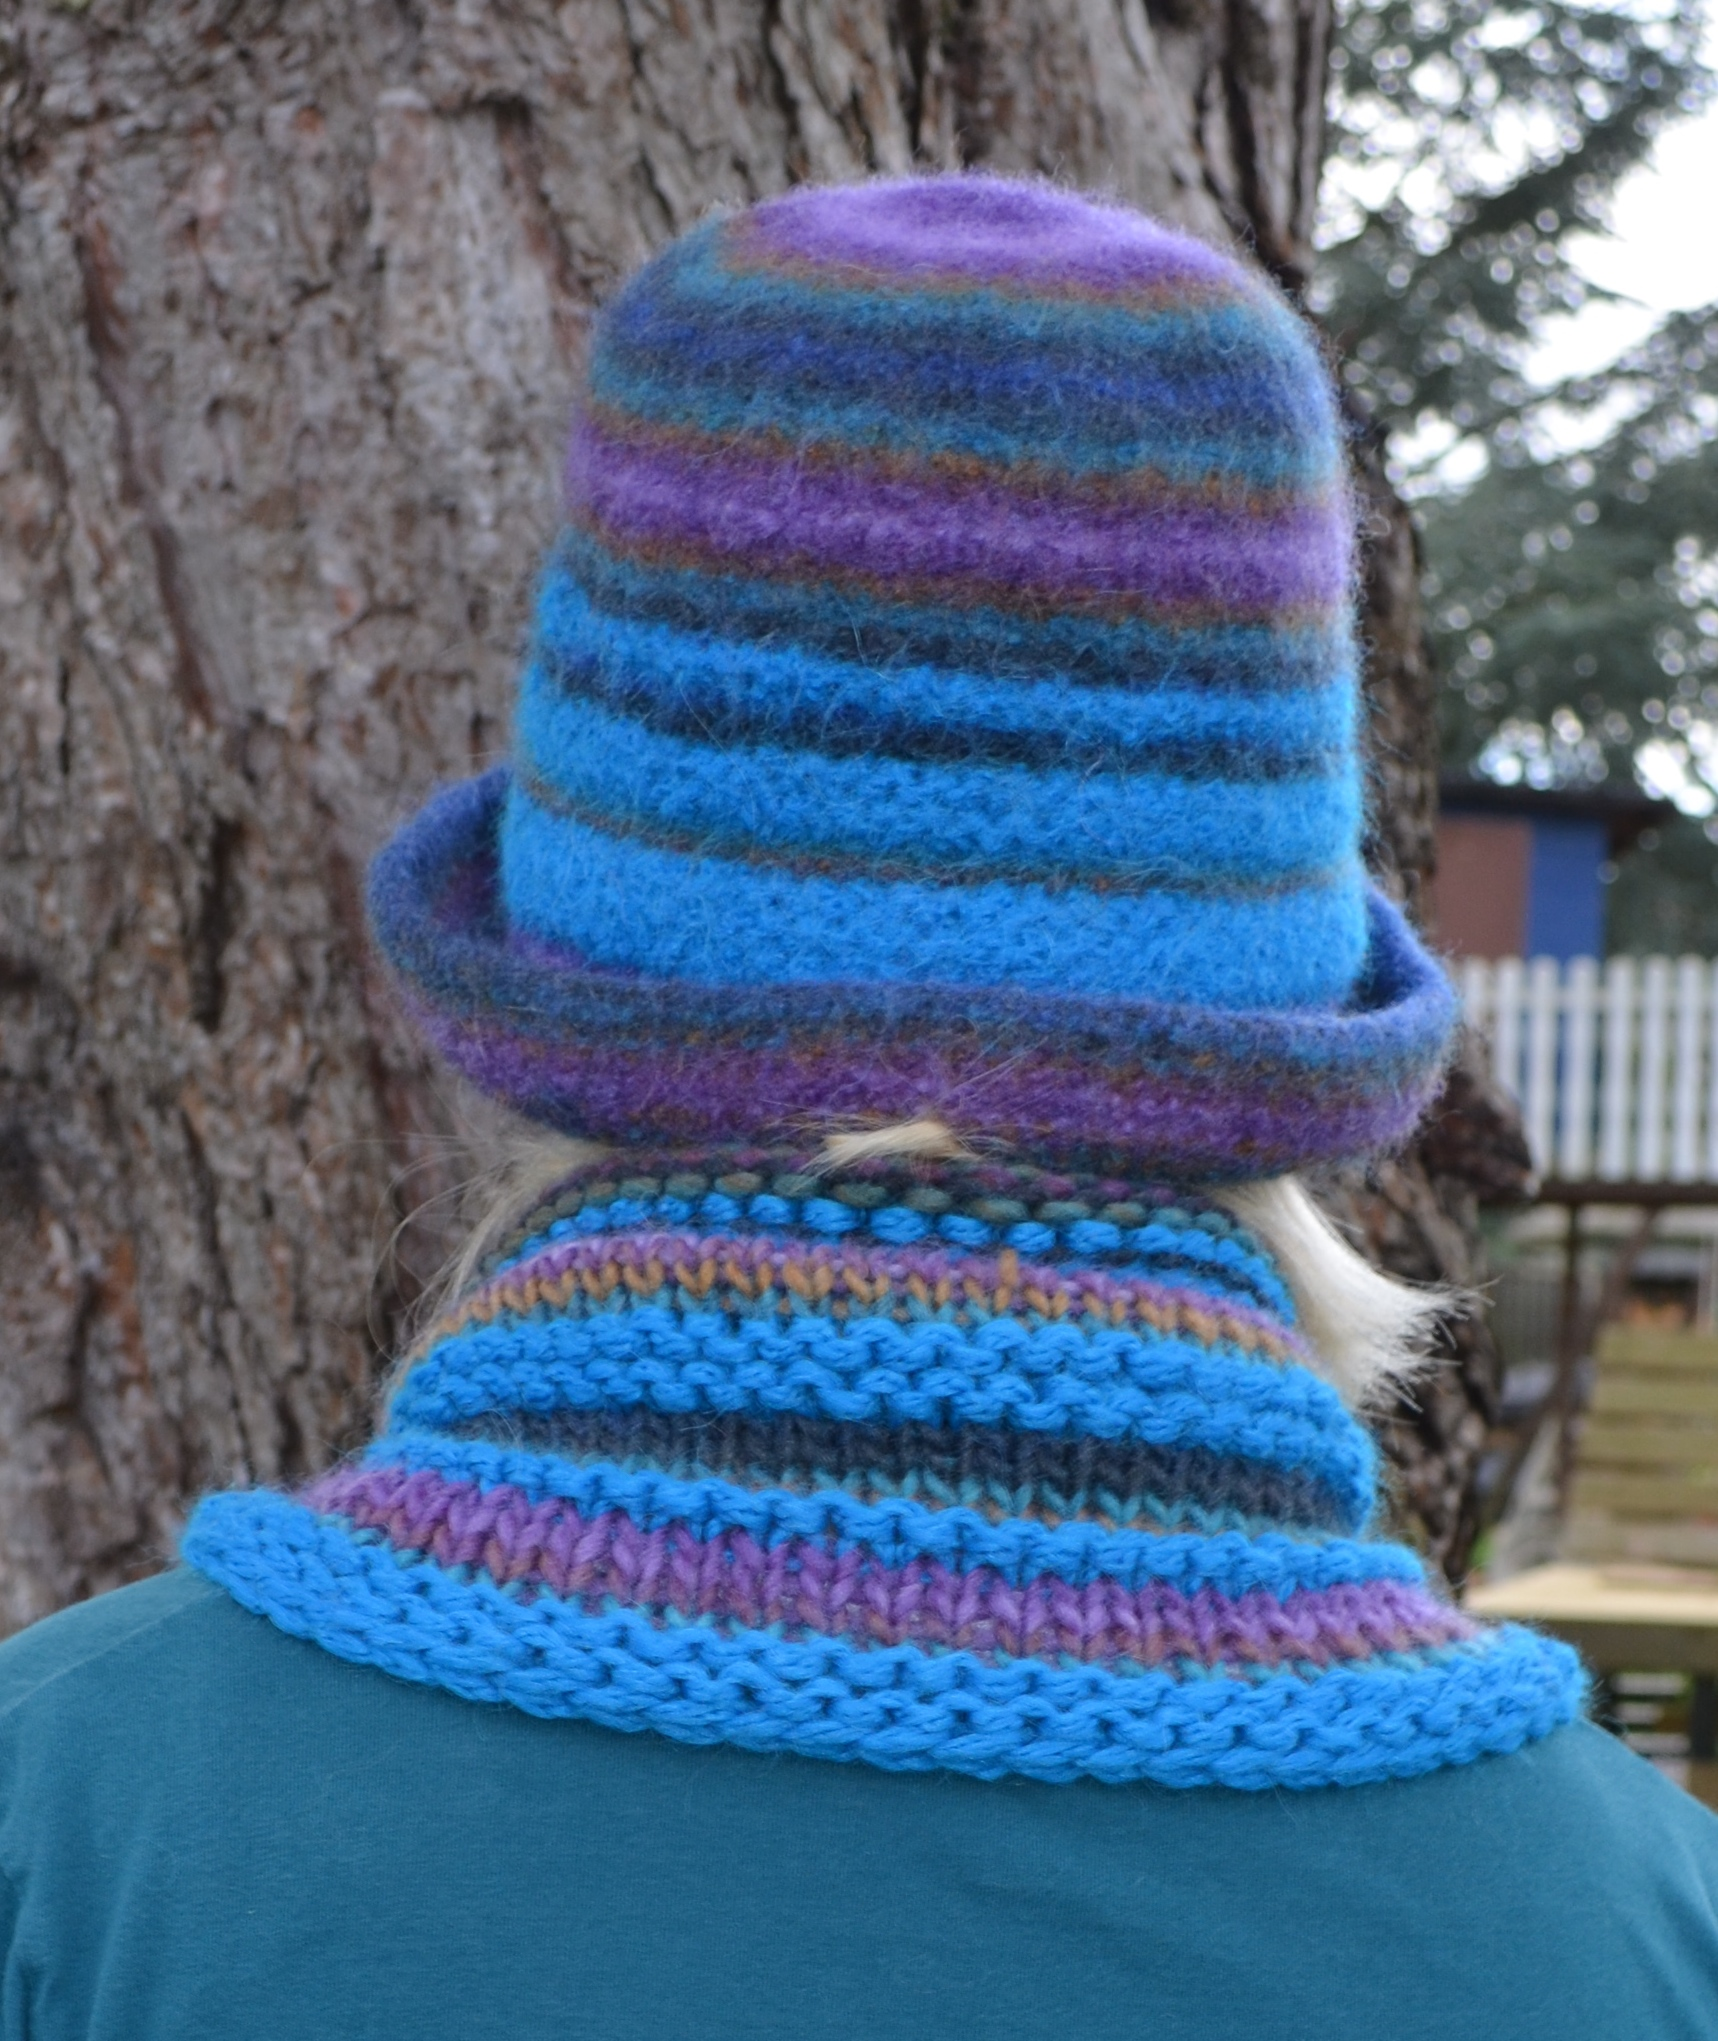 Heart-Felt, a new free pattern, and Swingy Heart-Felt are online ...